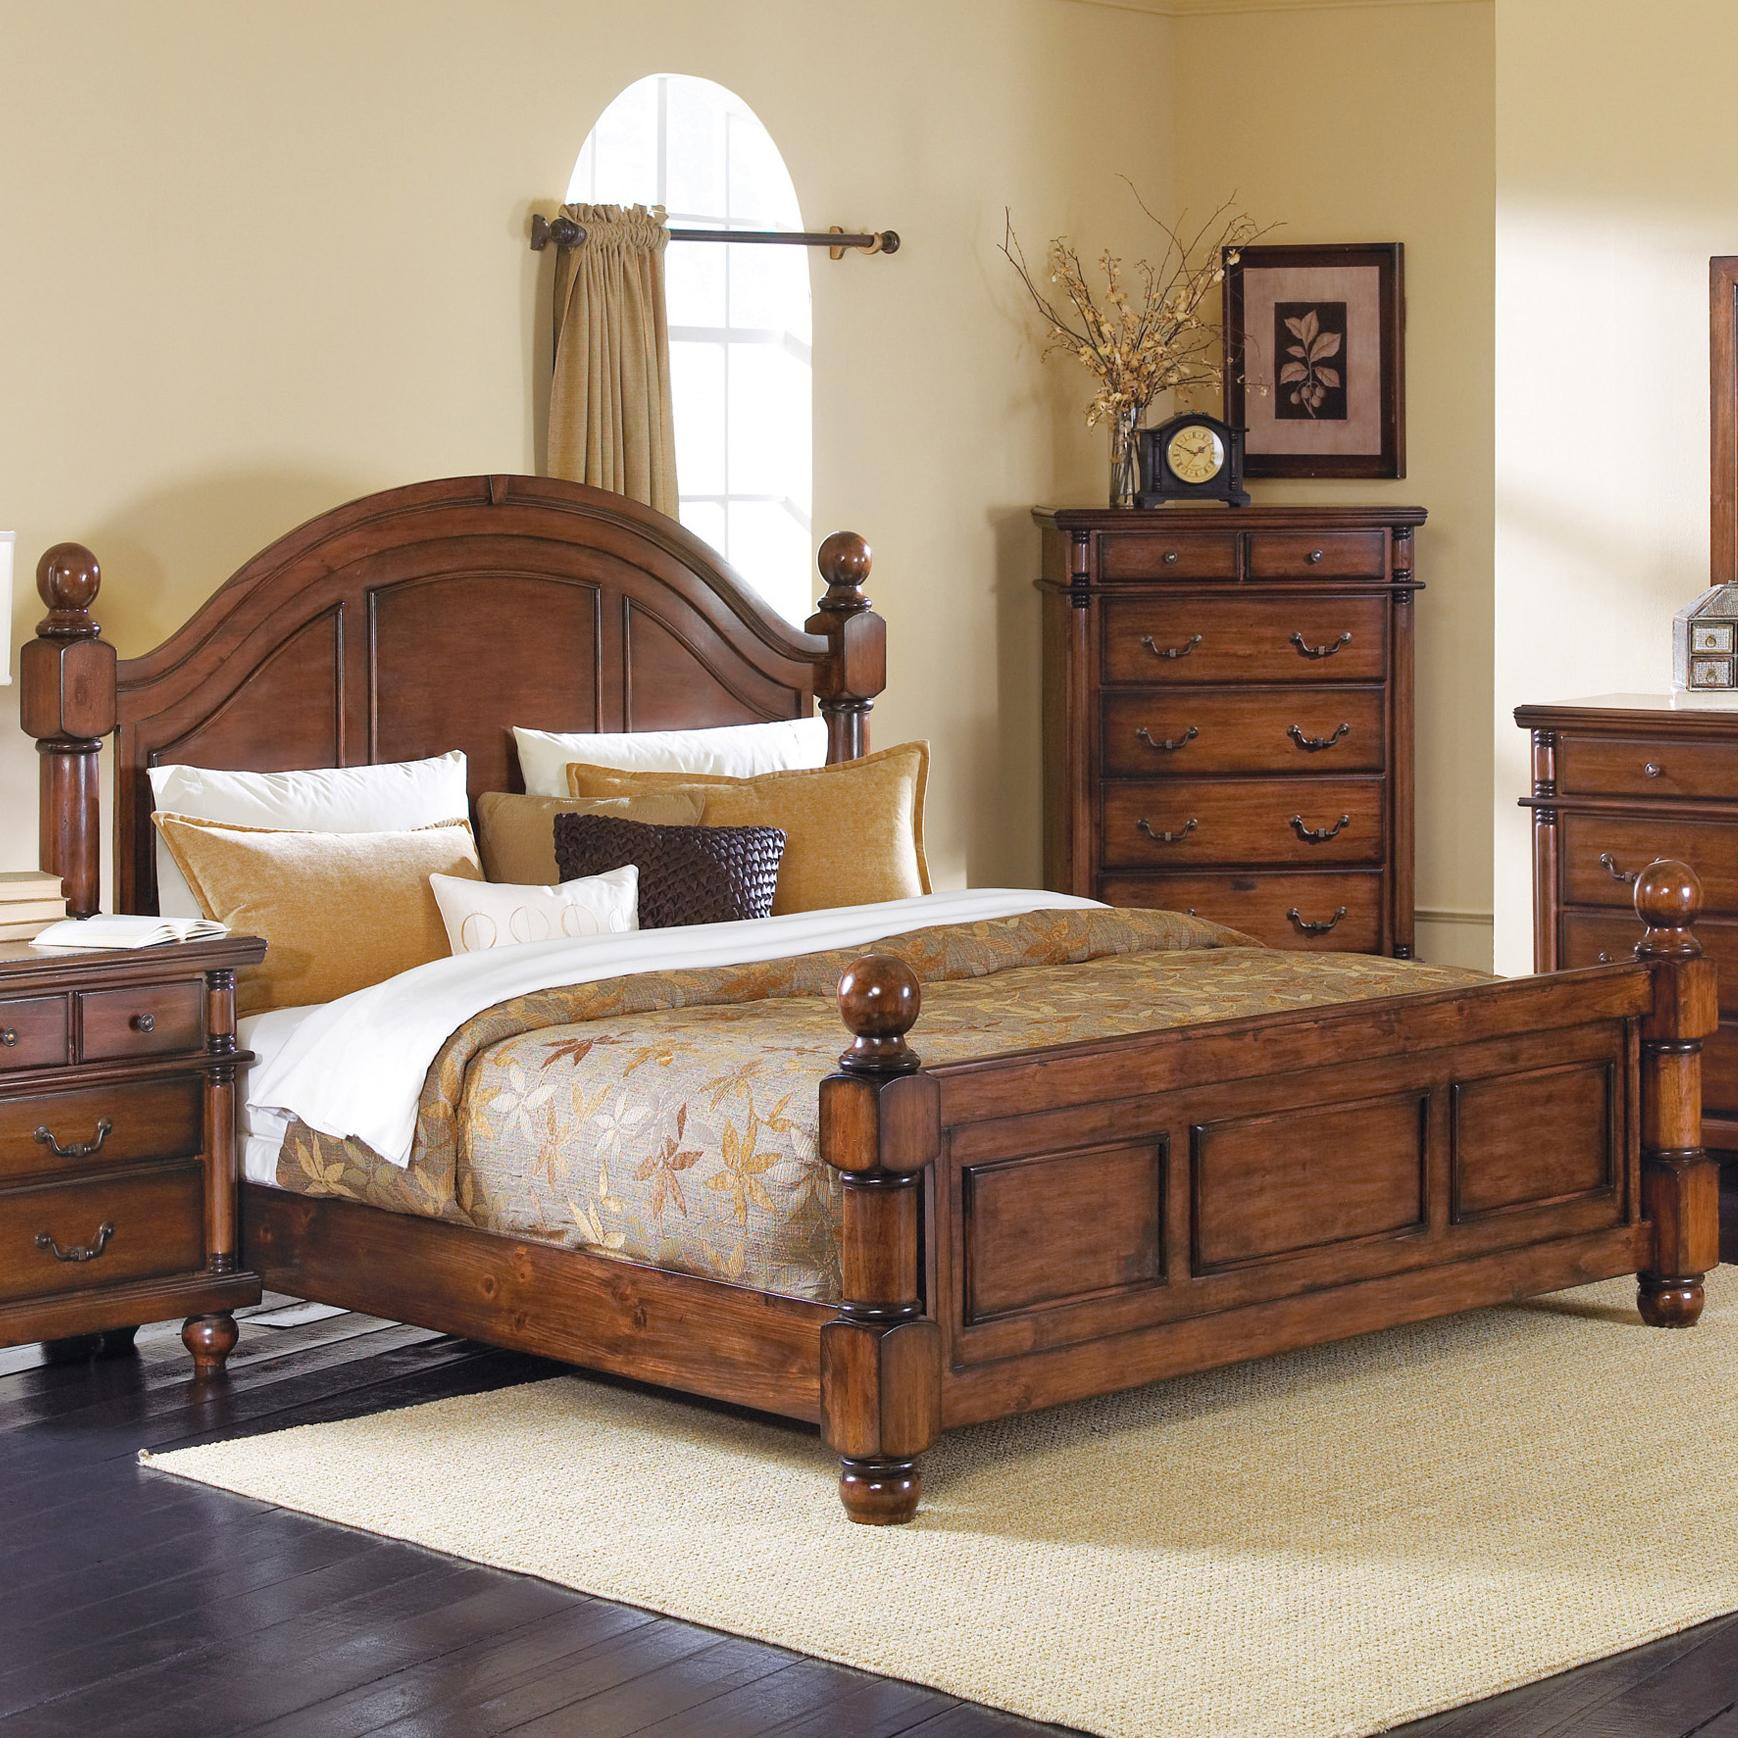 Crown Mark Augusta Queen Headboard & Footboard Bed  - Item Number: B7800-Q-HB+FB+RAIL